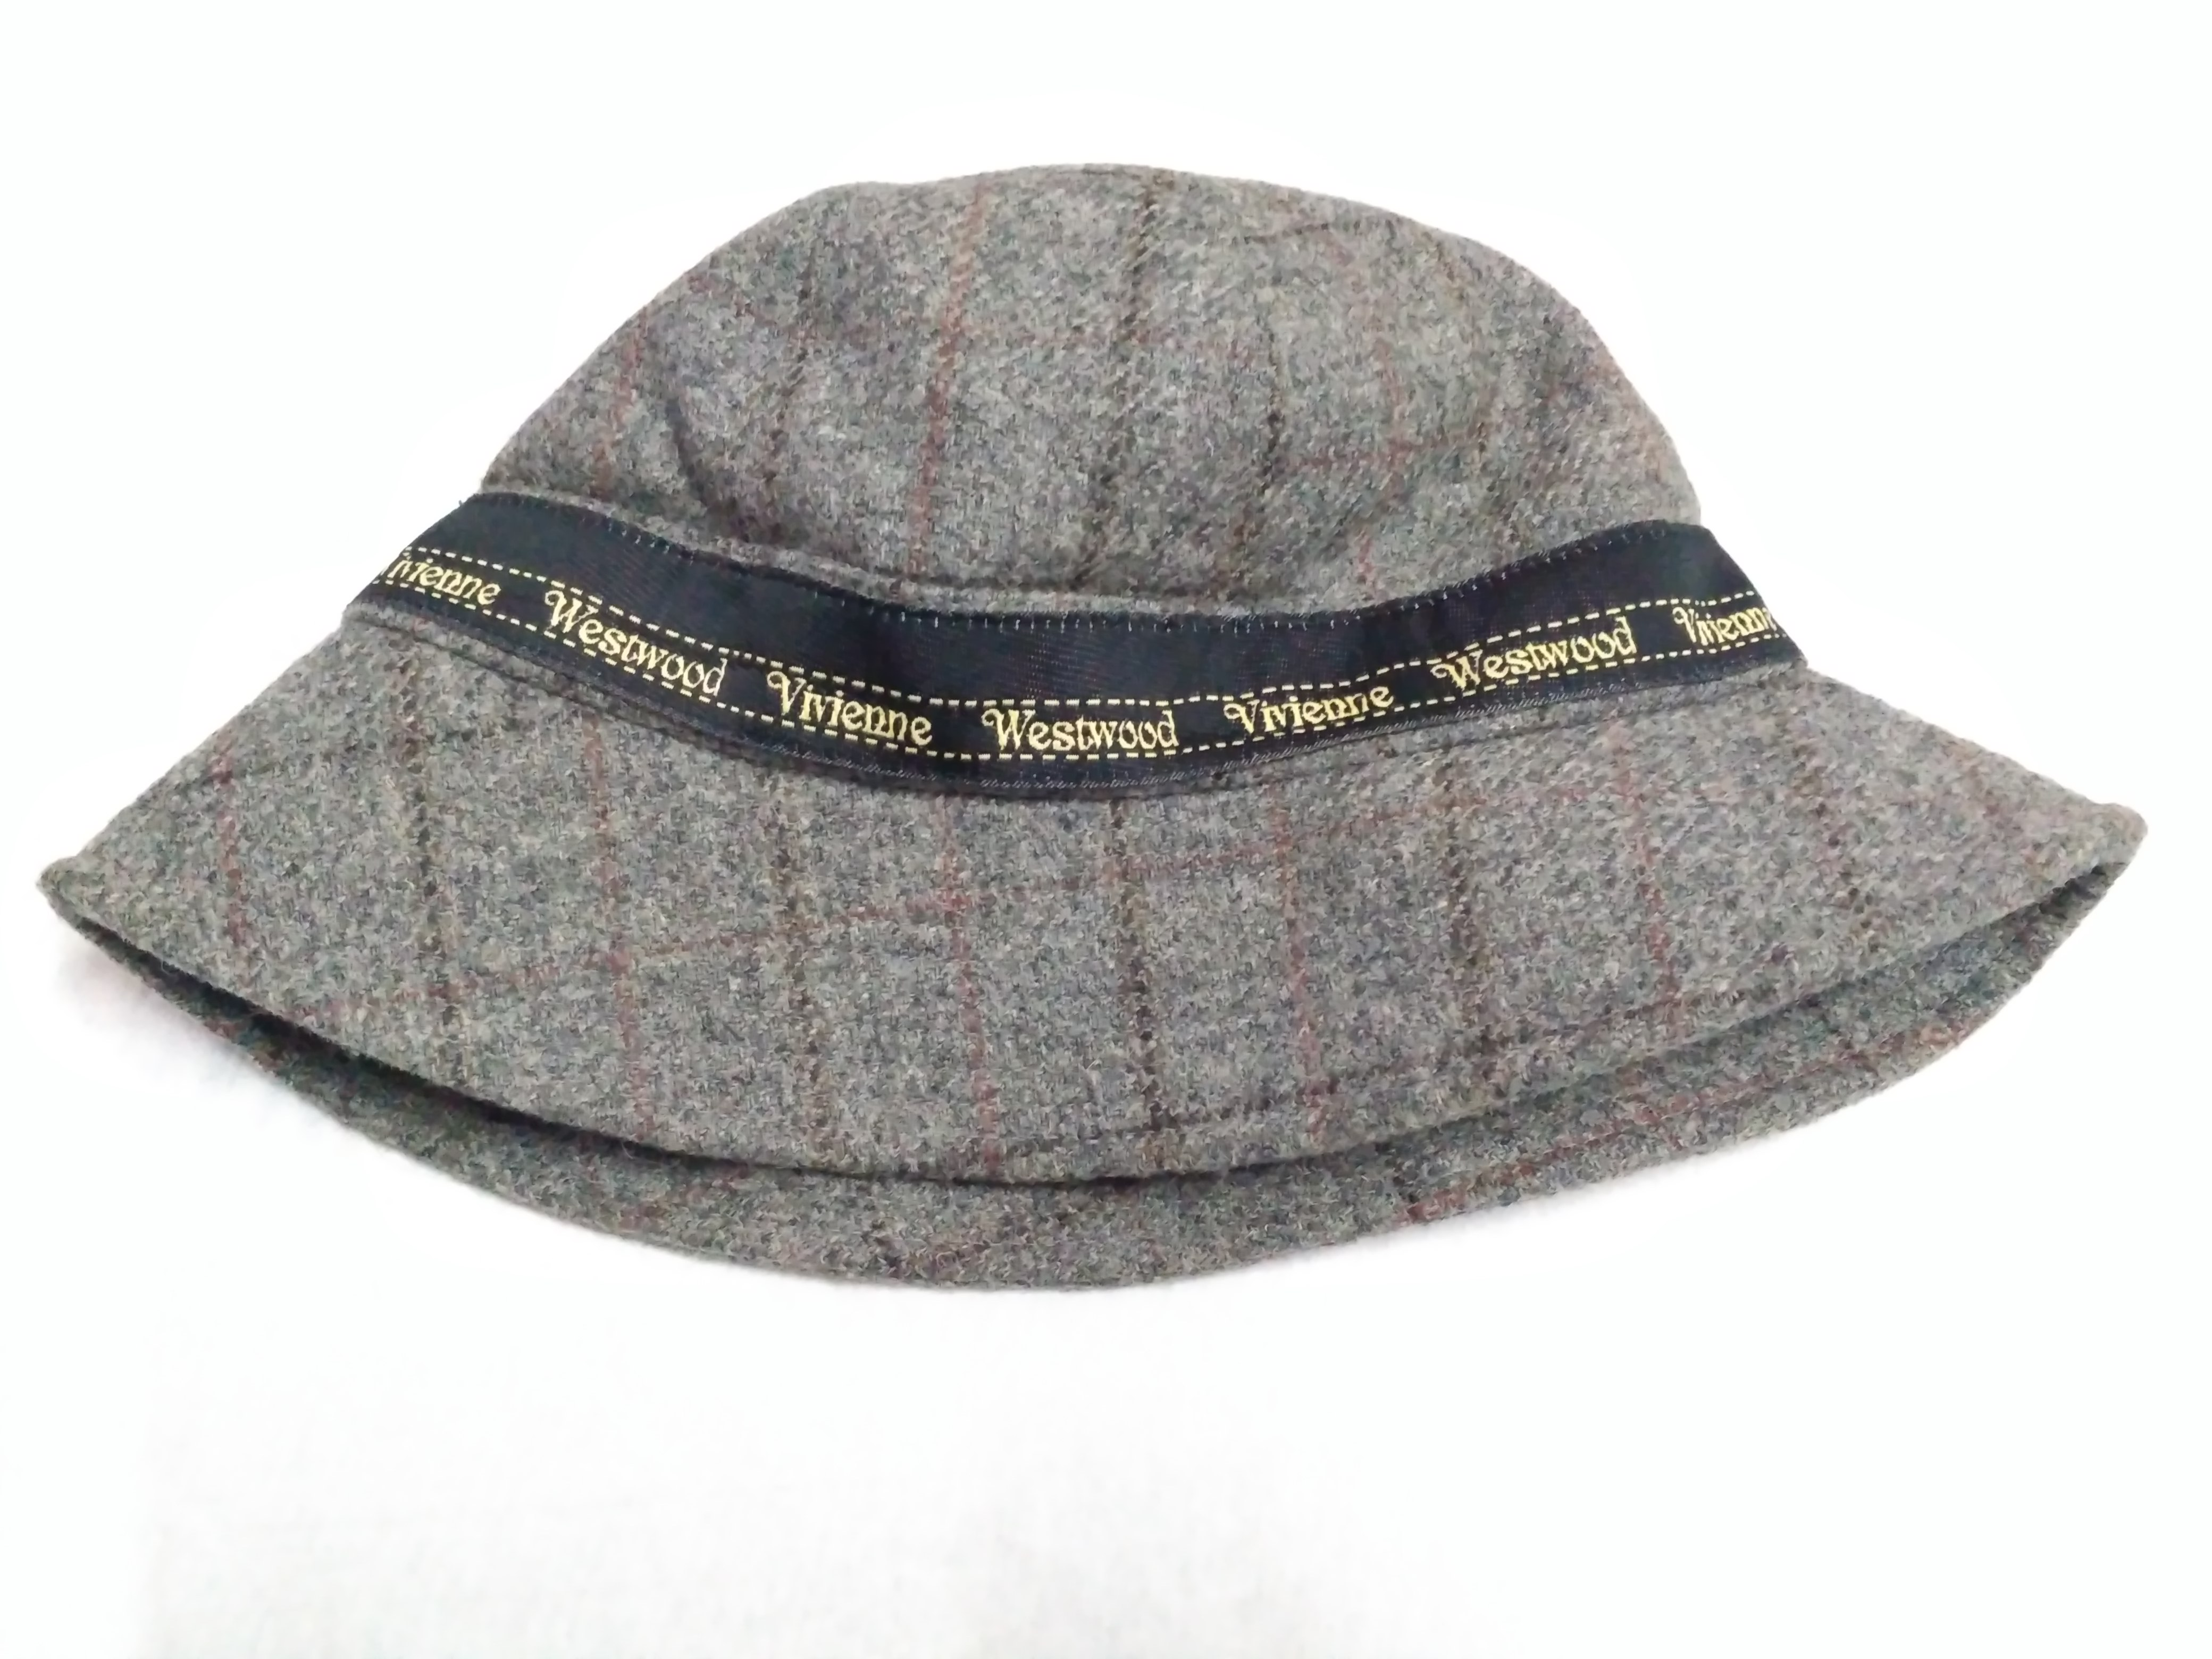 Vivienne Westwood Wool Plaid Bucket Hat Size one size - Hats for ... bc07db30dd4